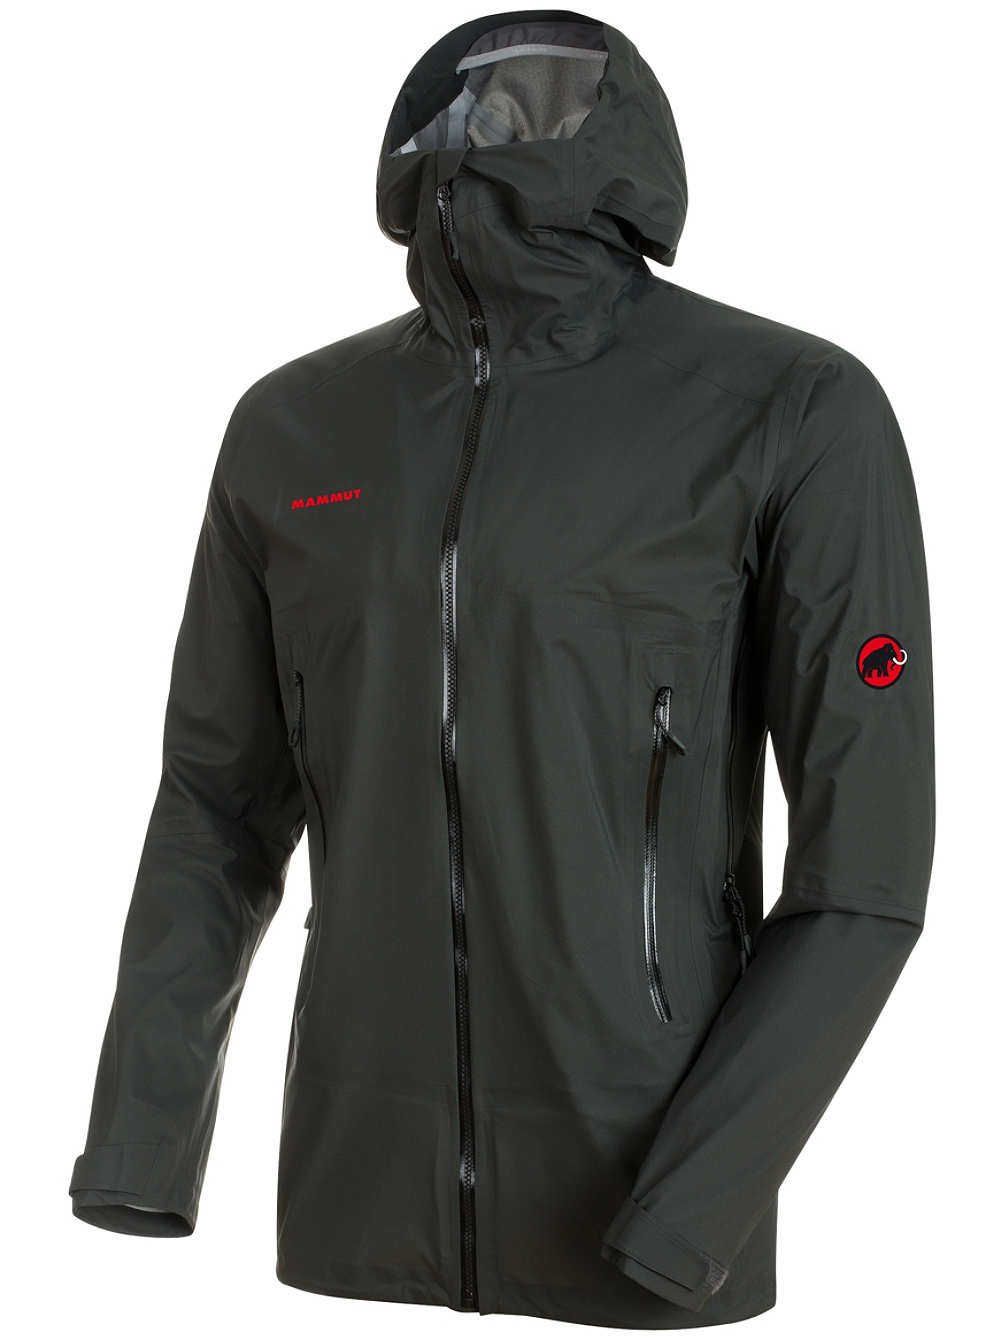 ◎マムート(MAMMUT) Masao Light HS Hooded Jacket メンズ 1010-25980-0121 ジャケット B07899T11Y XL|graphite graphite XL